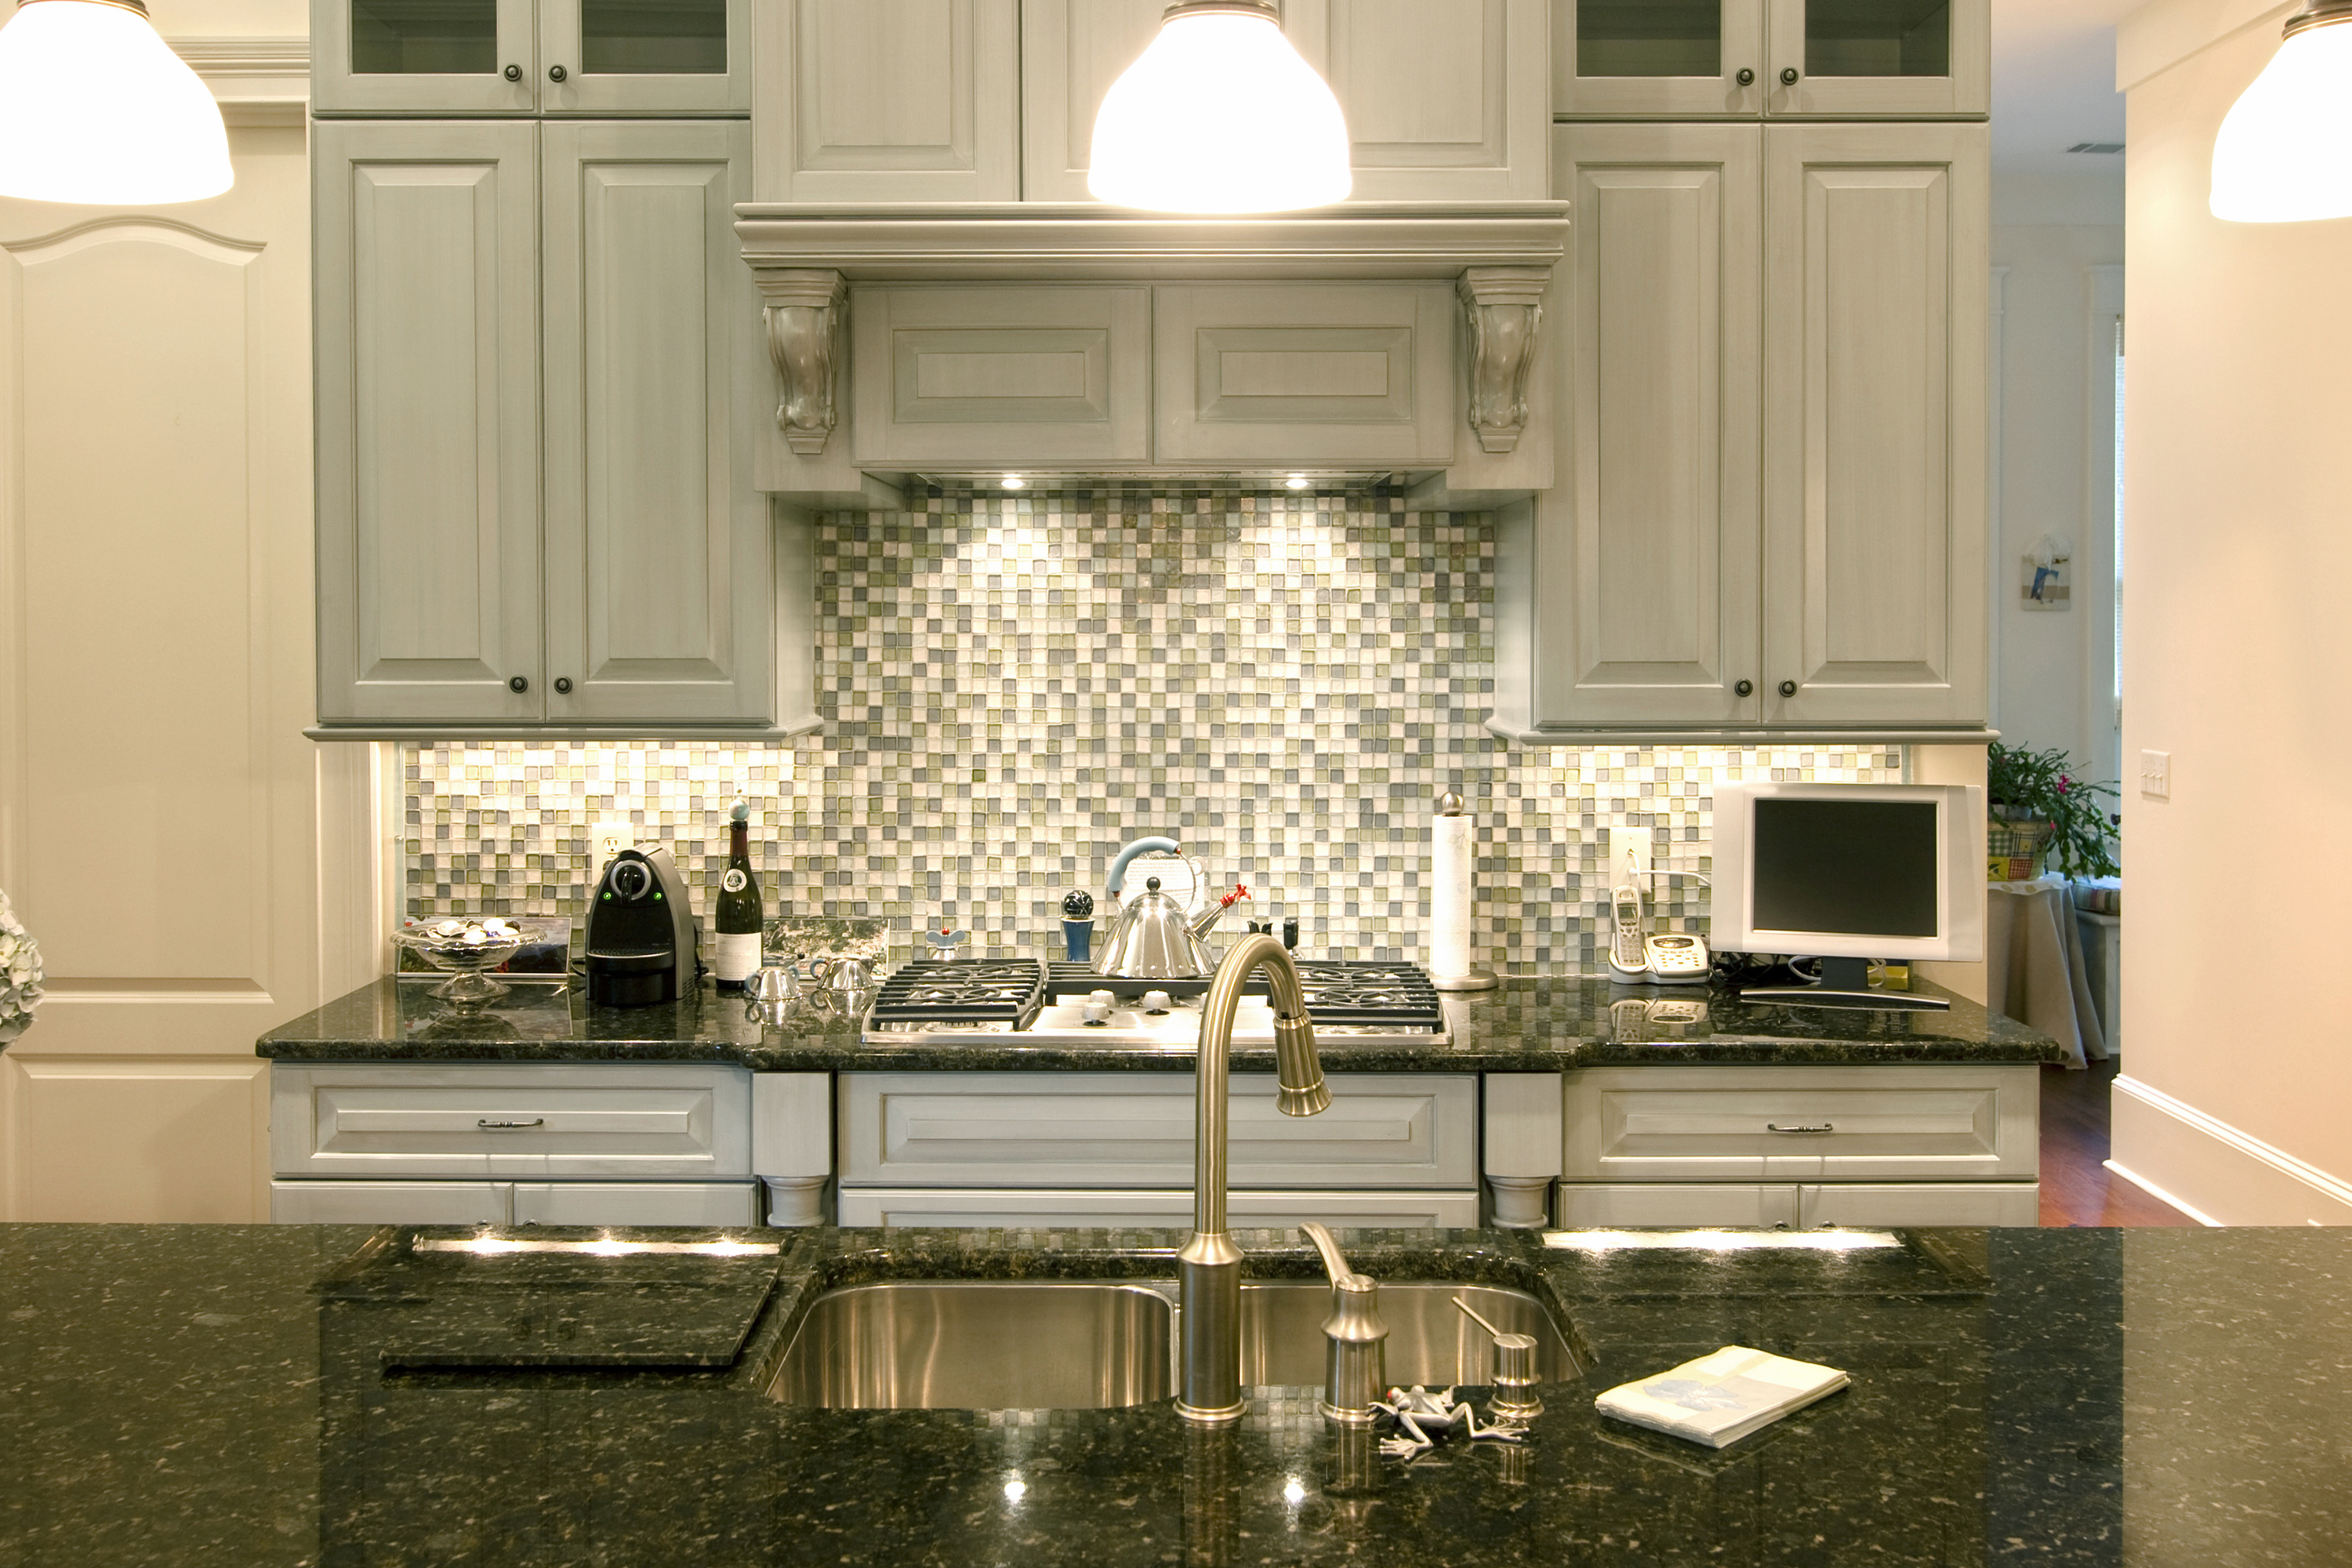 The best backsplash ideas for black granite countertops for Best kitchen backsplash ideas